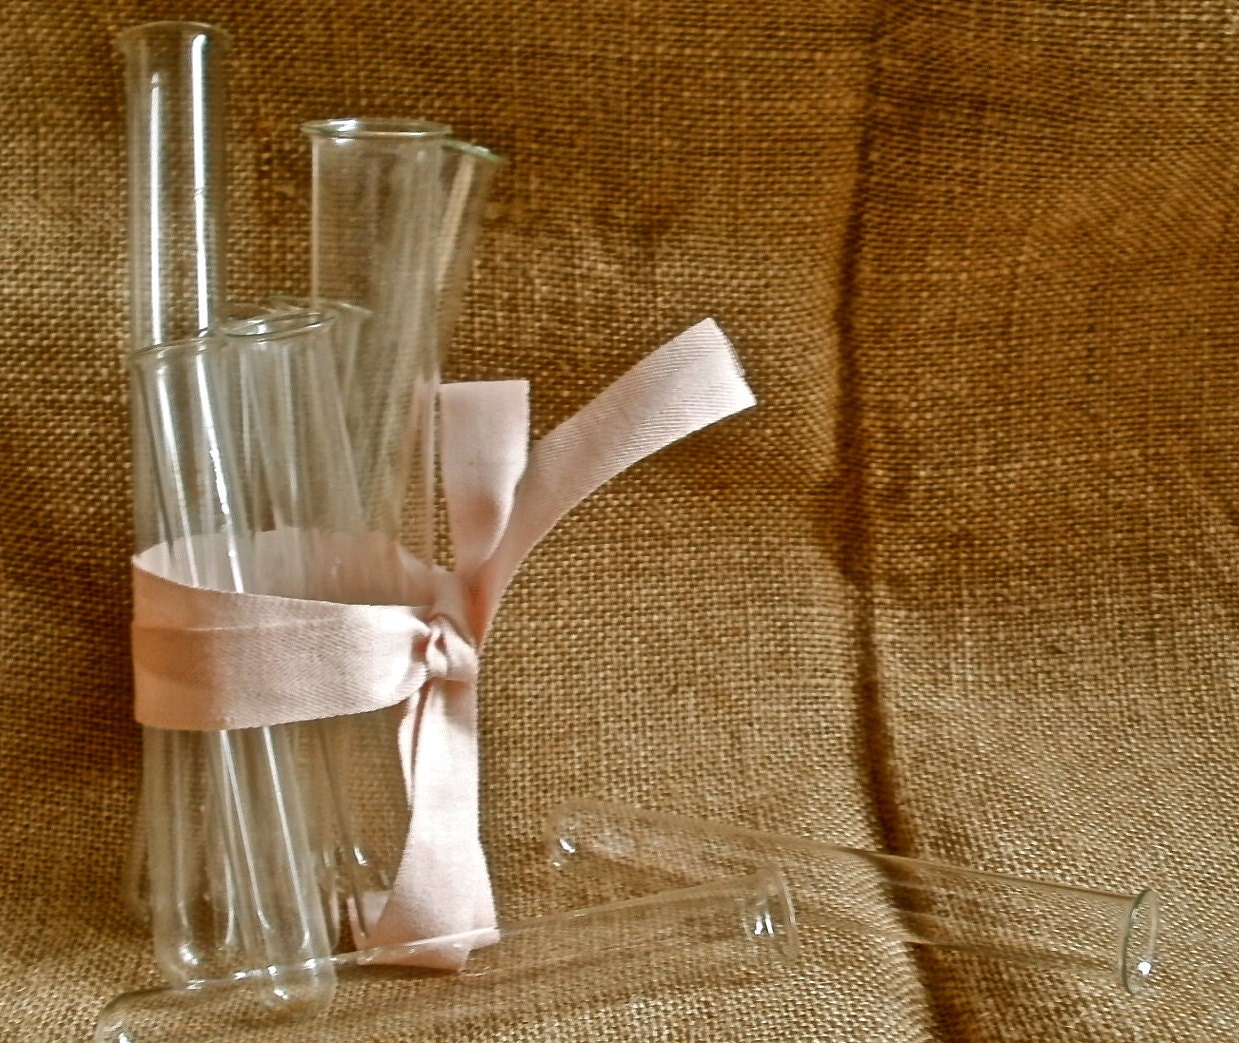 Test Tube Glass Vessels Great For Quirky Home Decor By